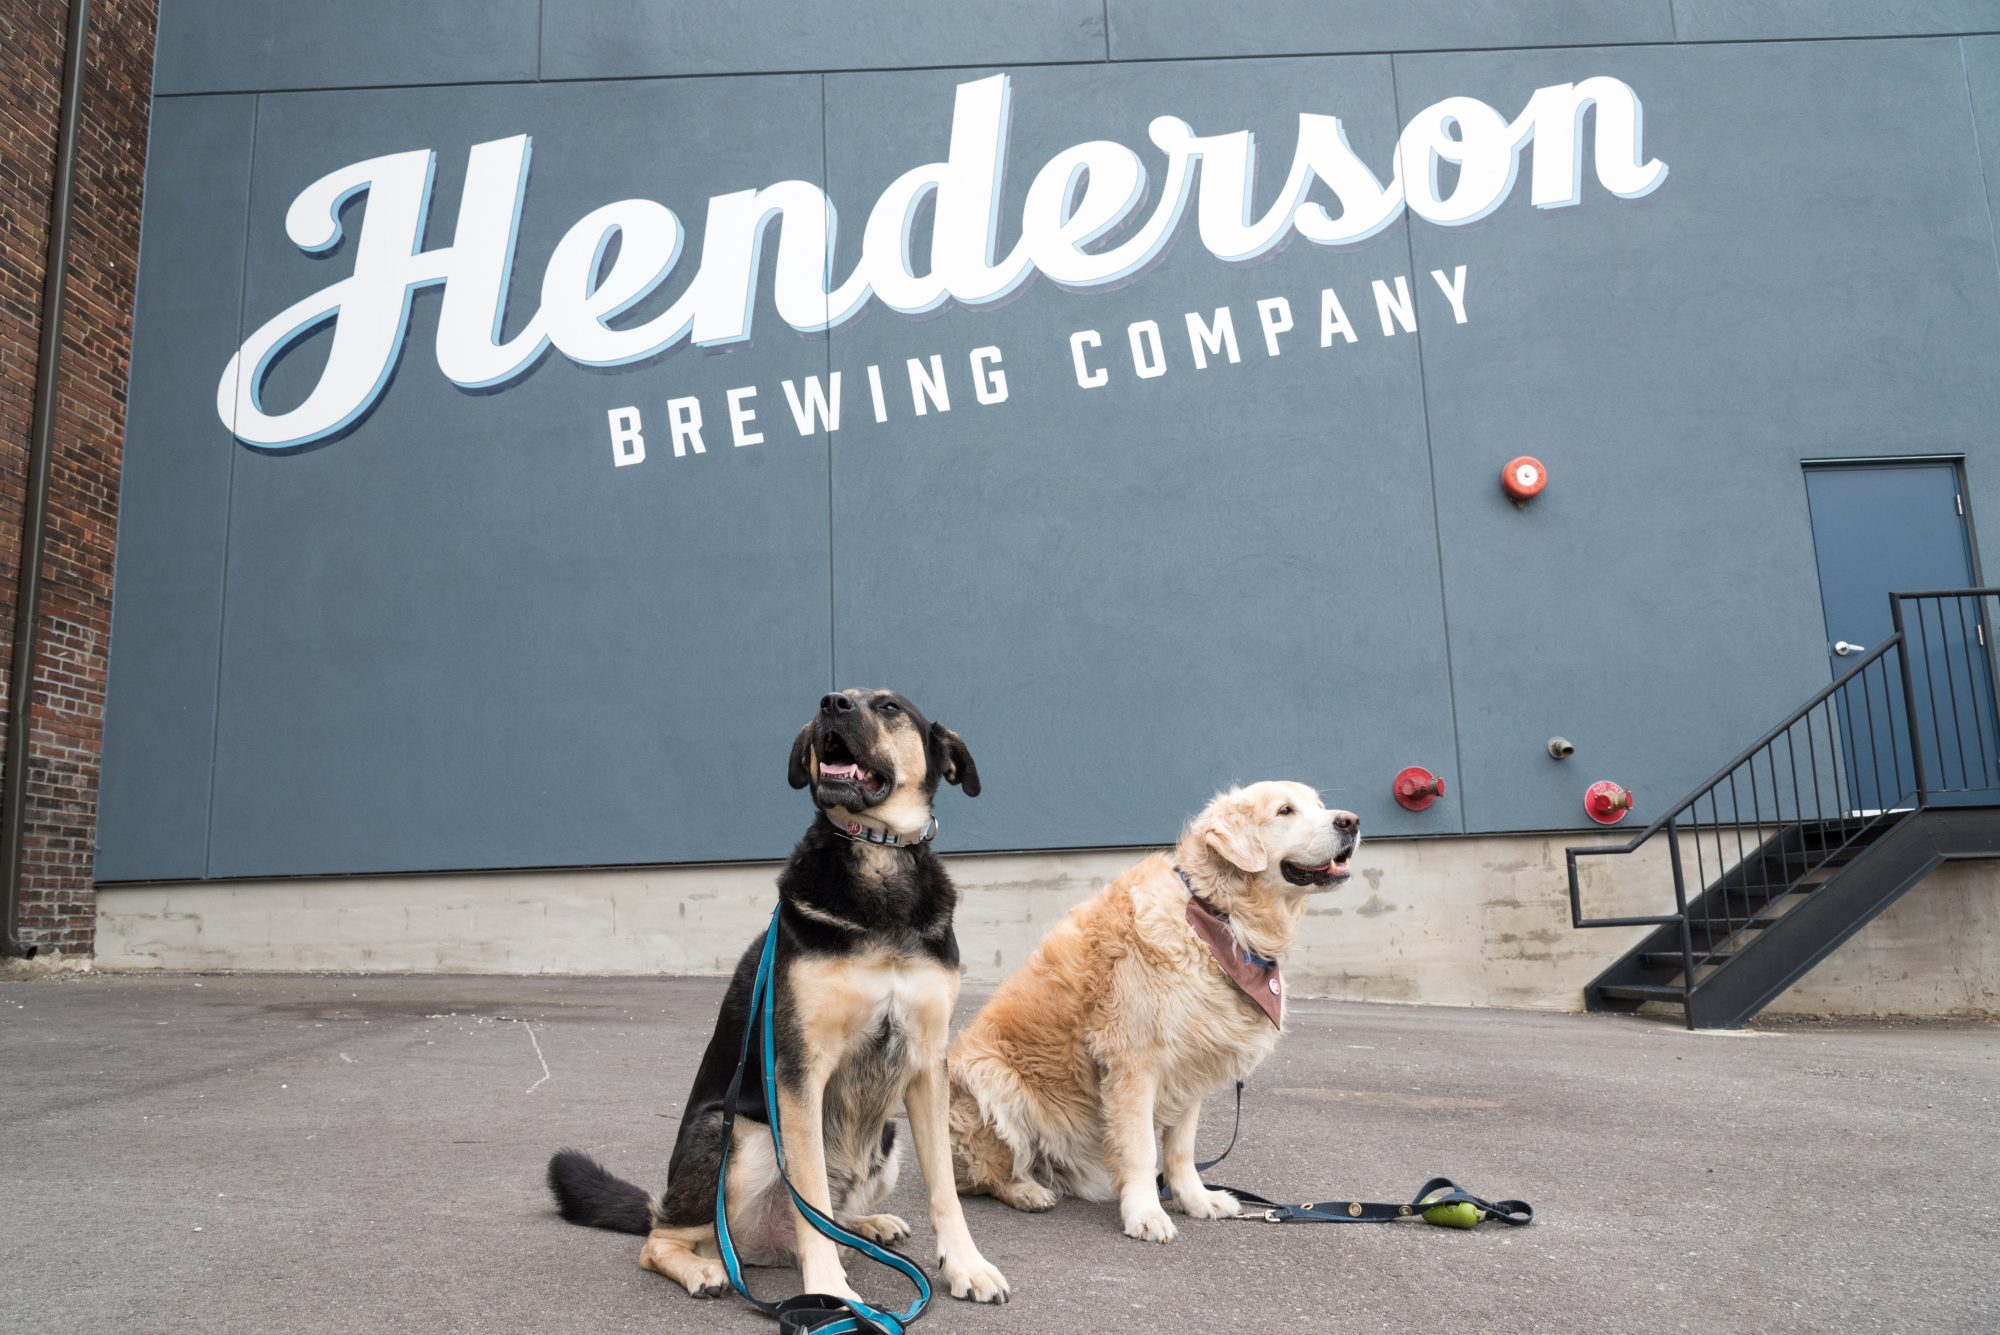 toronto-breweries-dogtoberfest-streeters-henderson-brewing-co-beer-dogs-benny-beauford